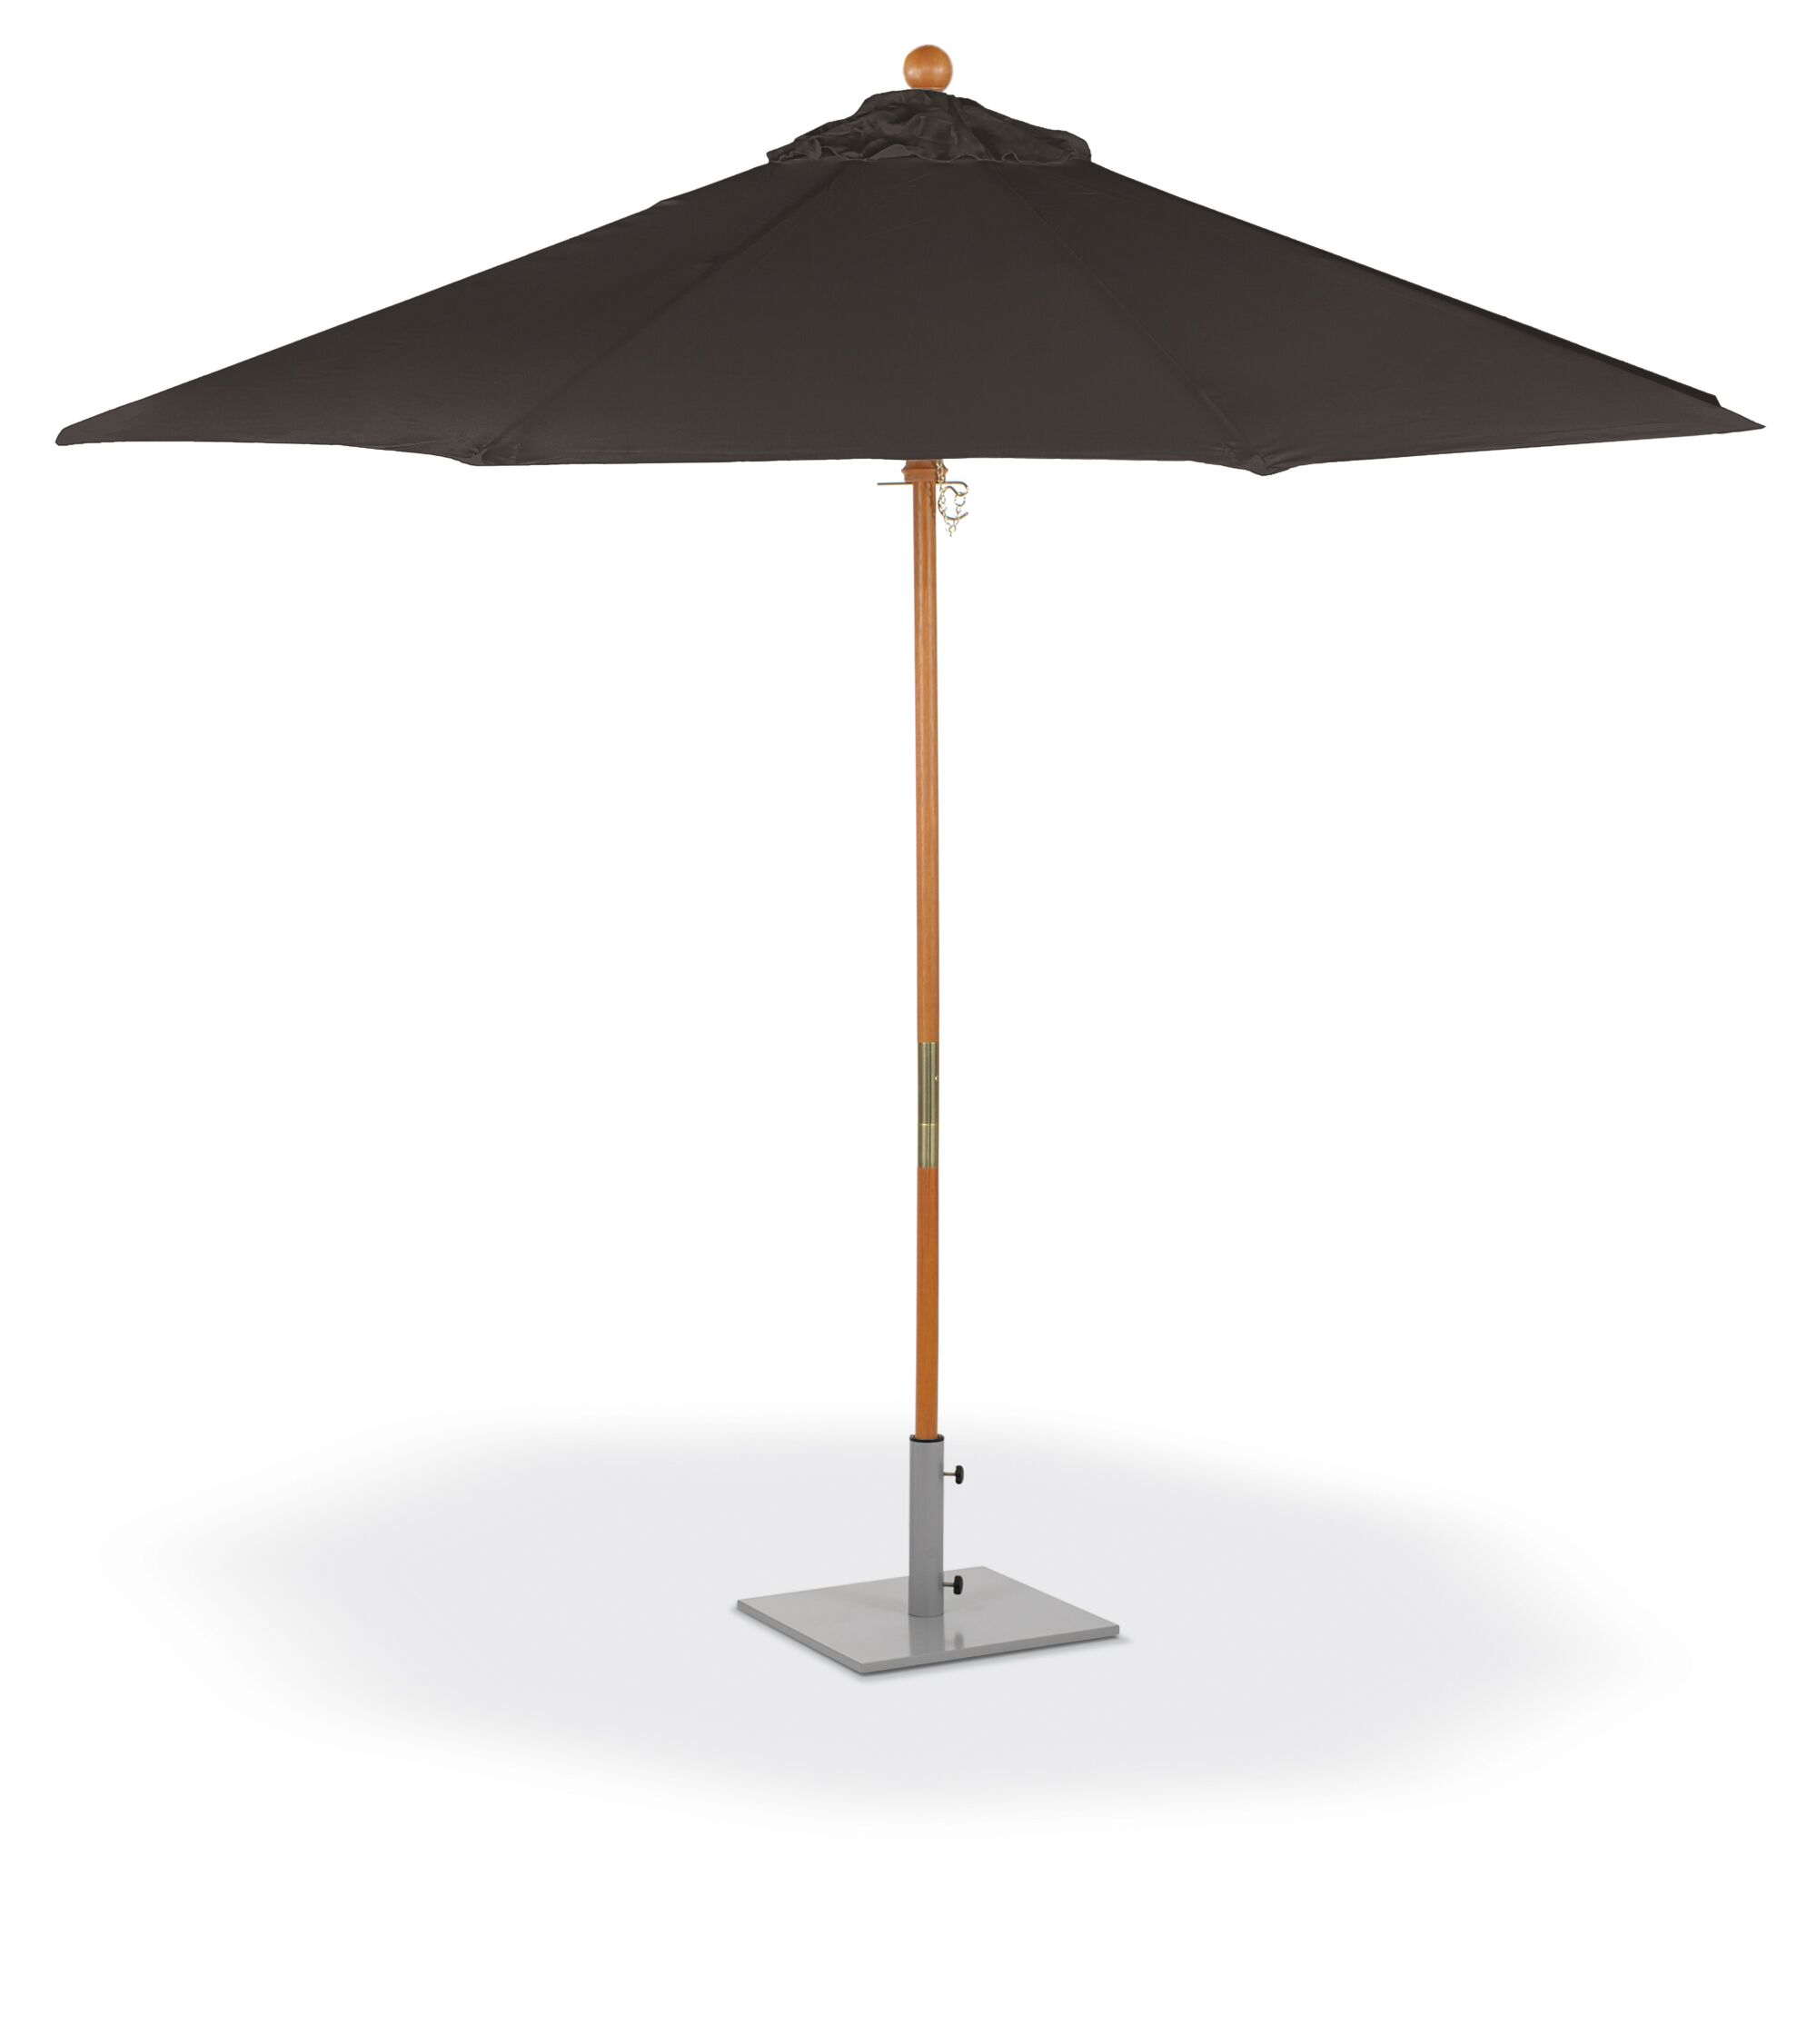 Standwood Sunbrella 9' Market Umbrella Fabric Color: Black